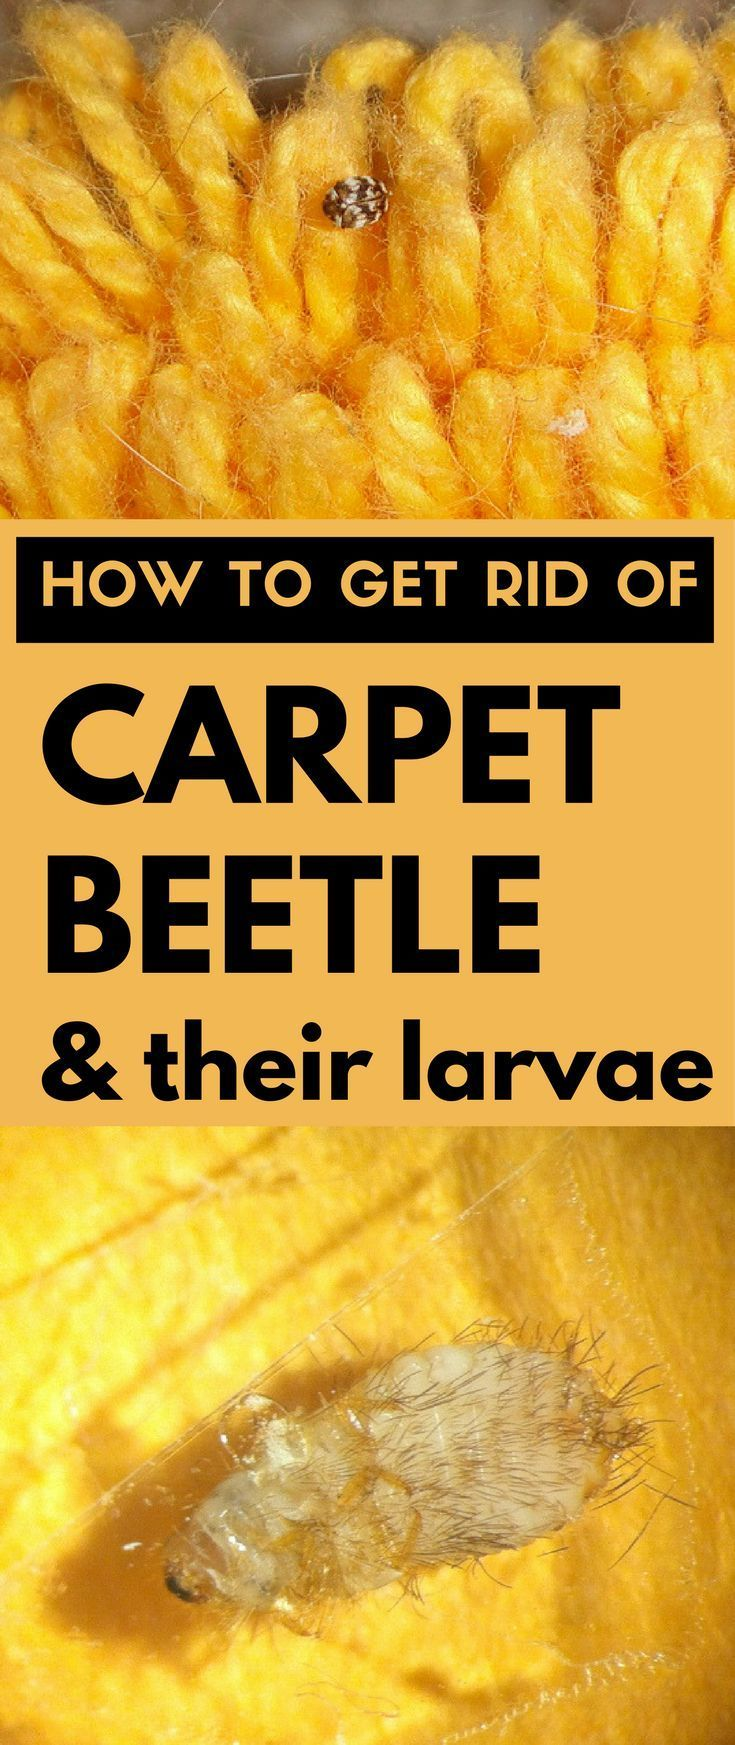 Learn how to get rid of carpet beetle and their larvae